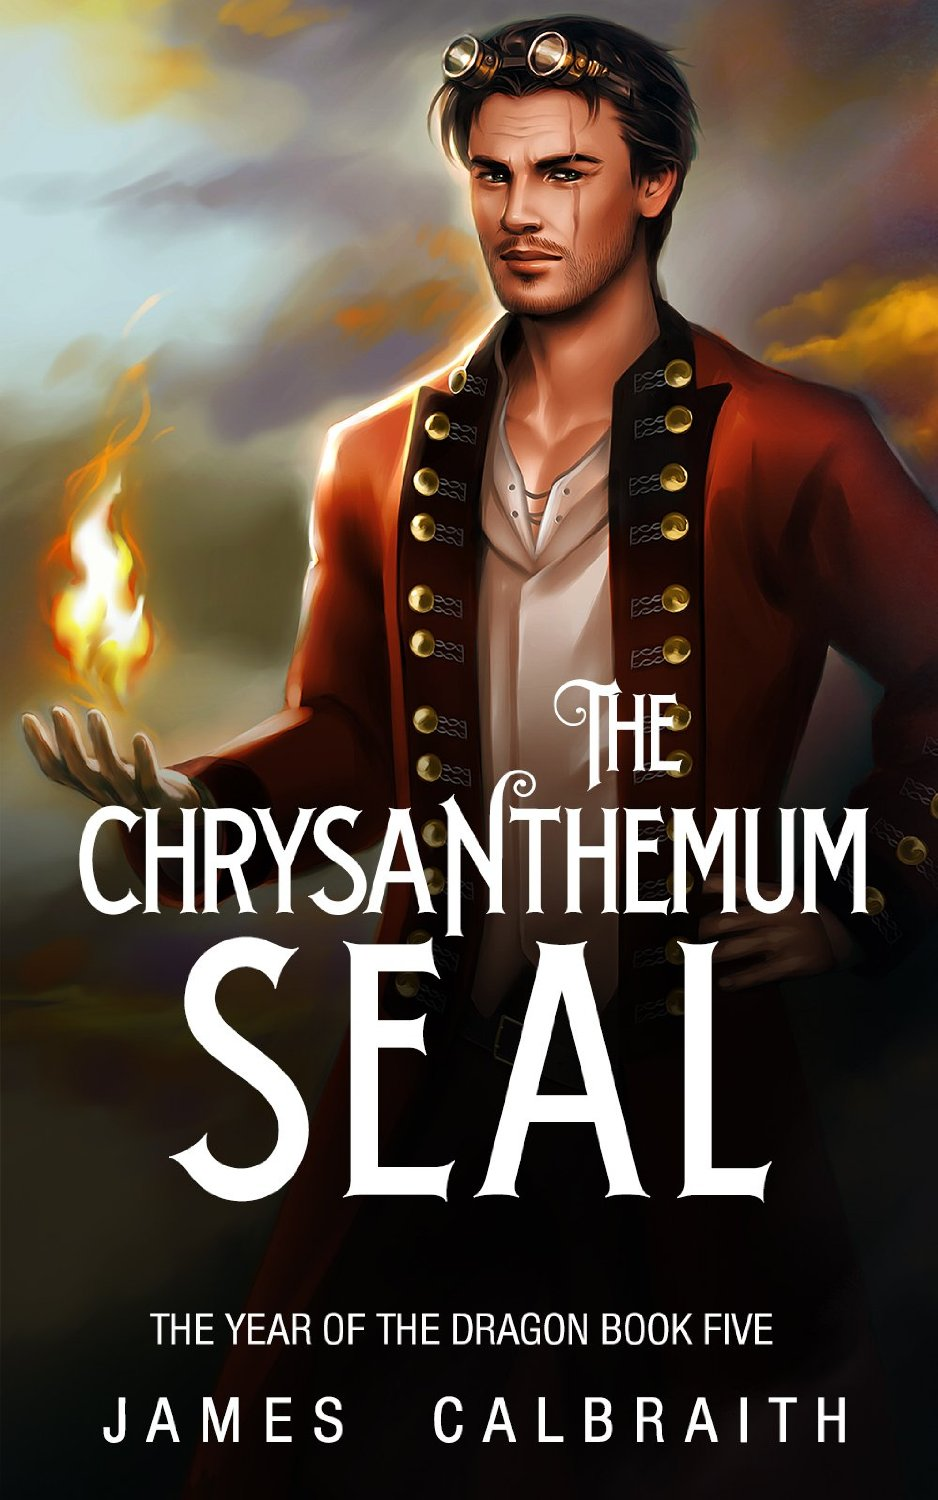 The Chrysanthemum Seal